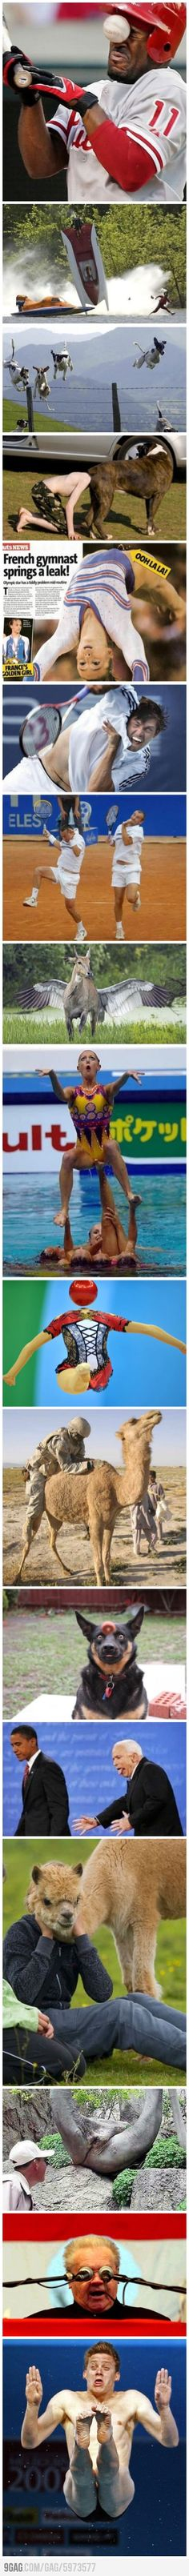 Some pictures taken at the right time. The gymnast is an example of a high level athlete experiencing urinary incontinence - a common problem in many sports